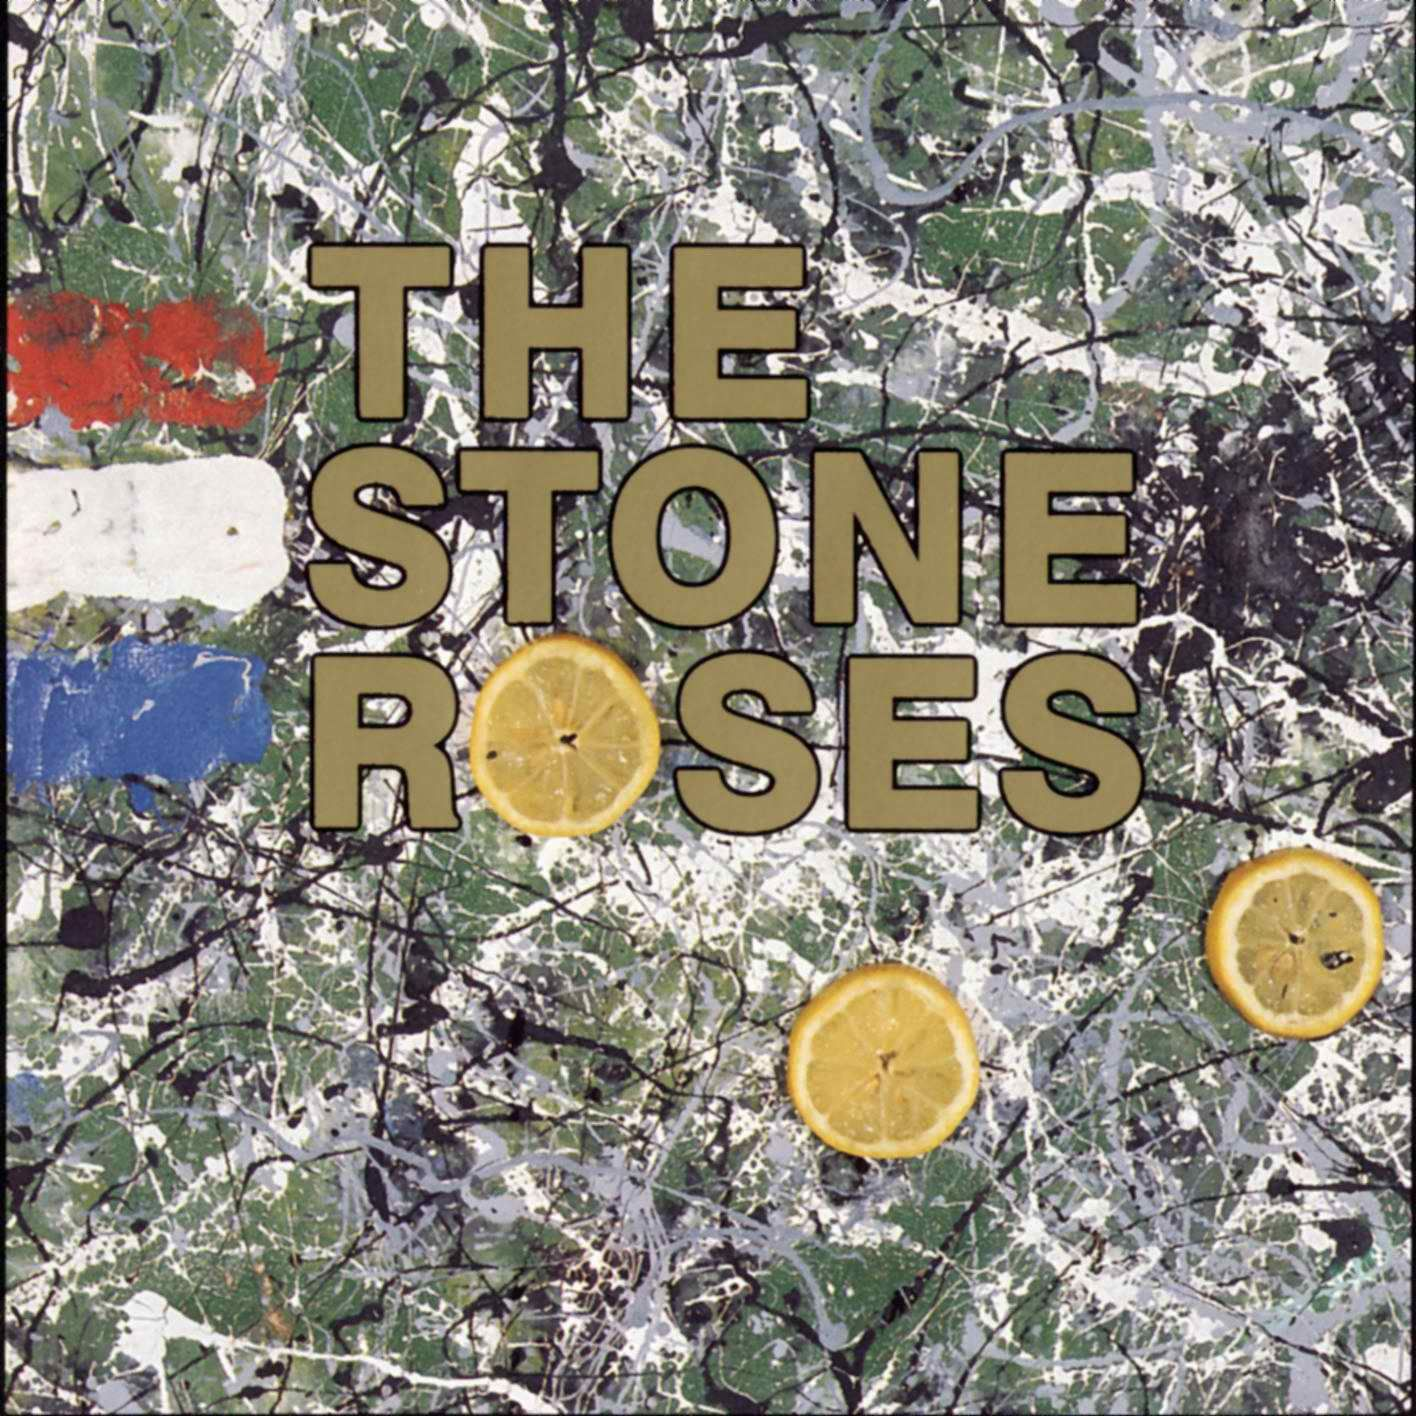 /uploads/tad/430_The-Almost-Daily_stone-roses.jpeg